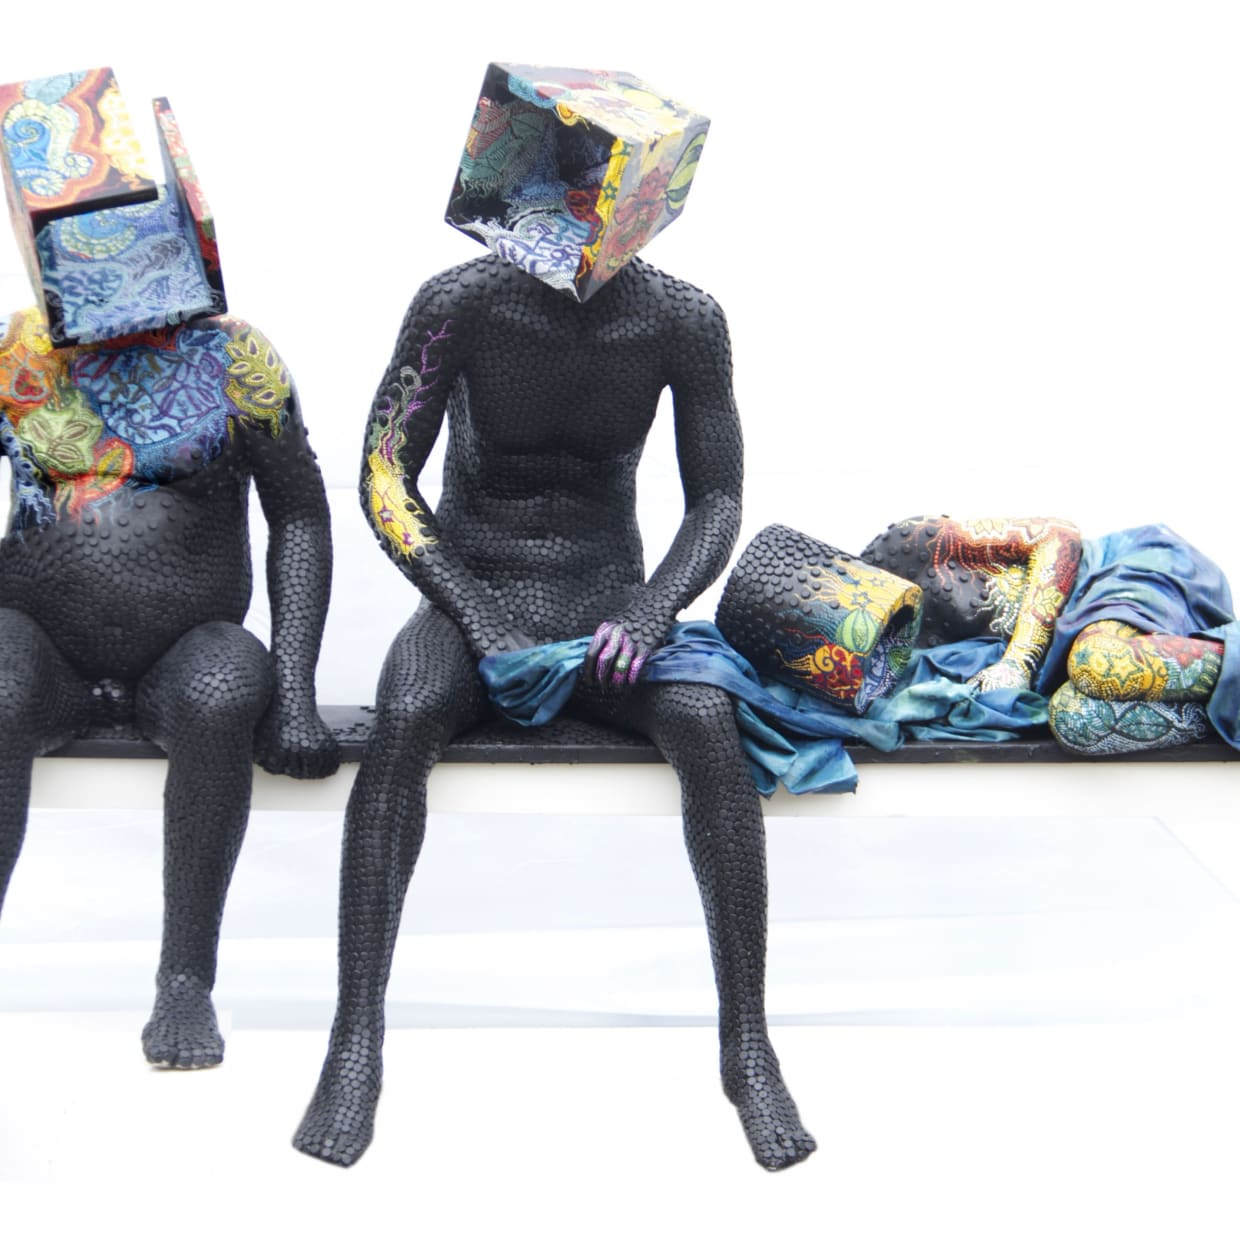 Womanscape feature 'Nigerian Artist Péju Alatise: The Rebellious Act of Freedom'